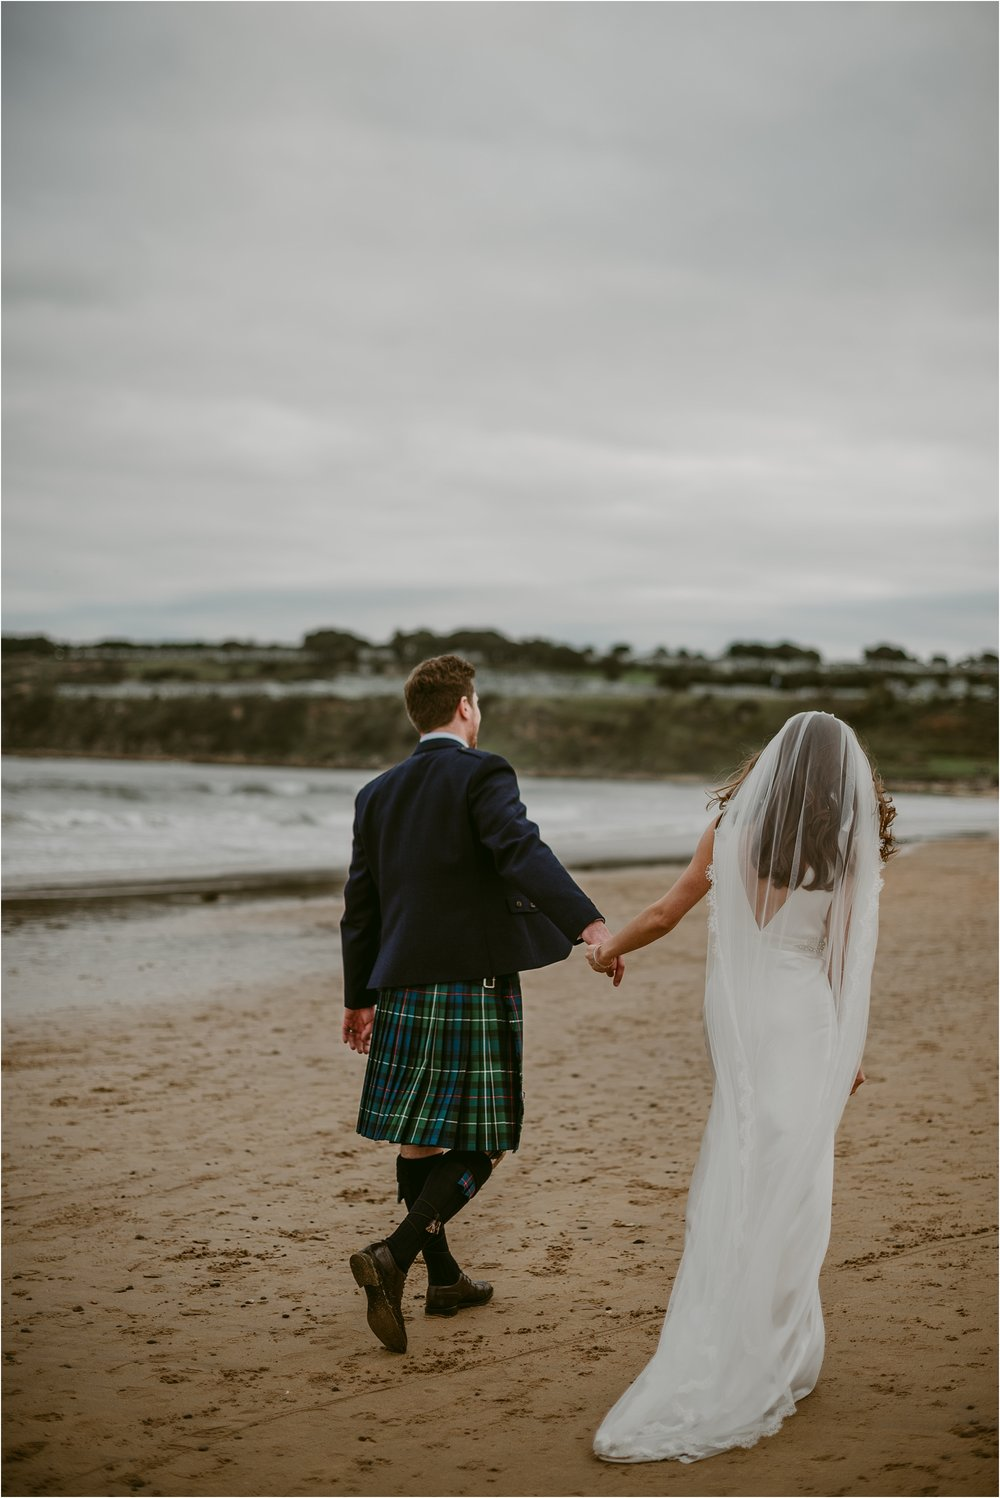 Scott+Joanna-Kinkell-Byre-wedding-fife-photography__0052.jpg